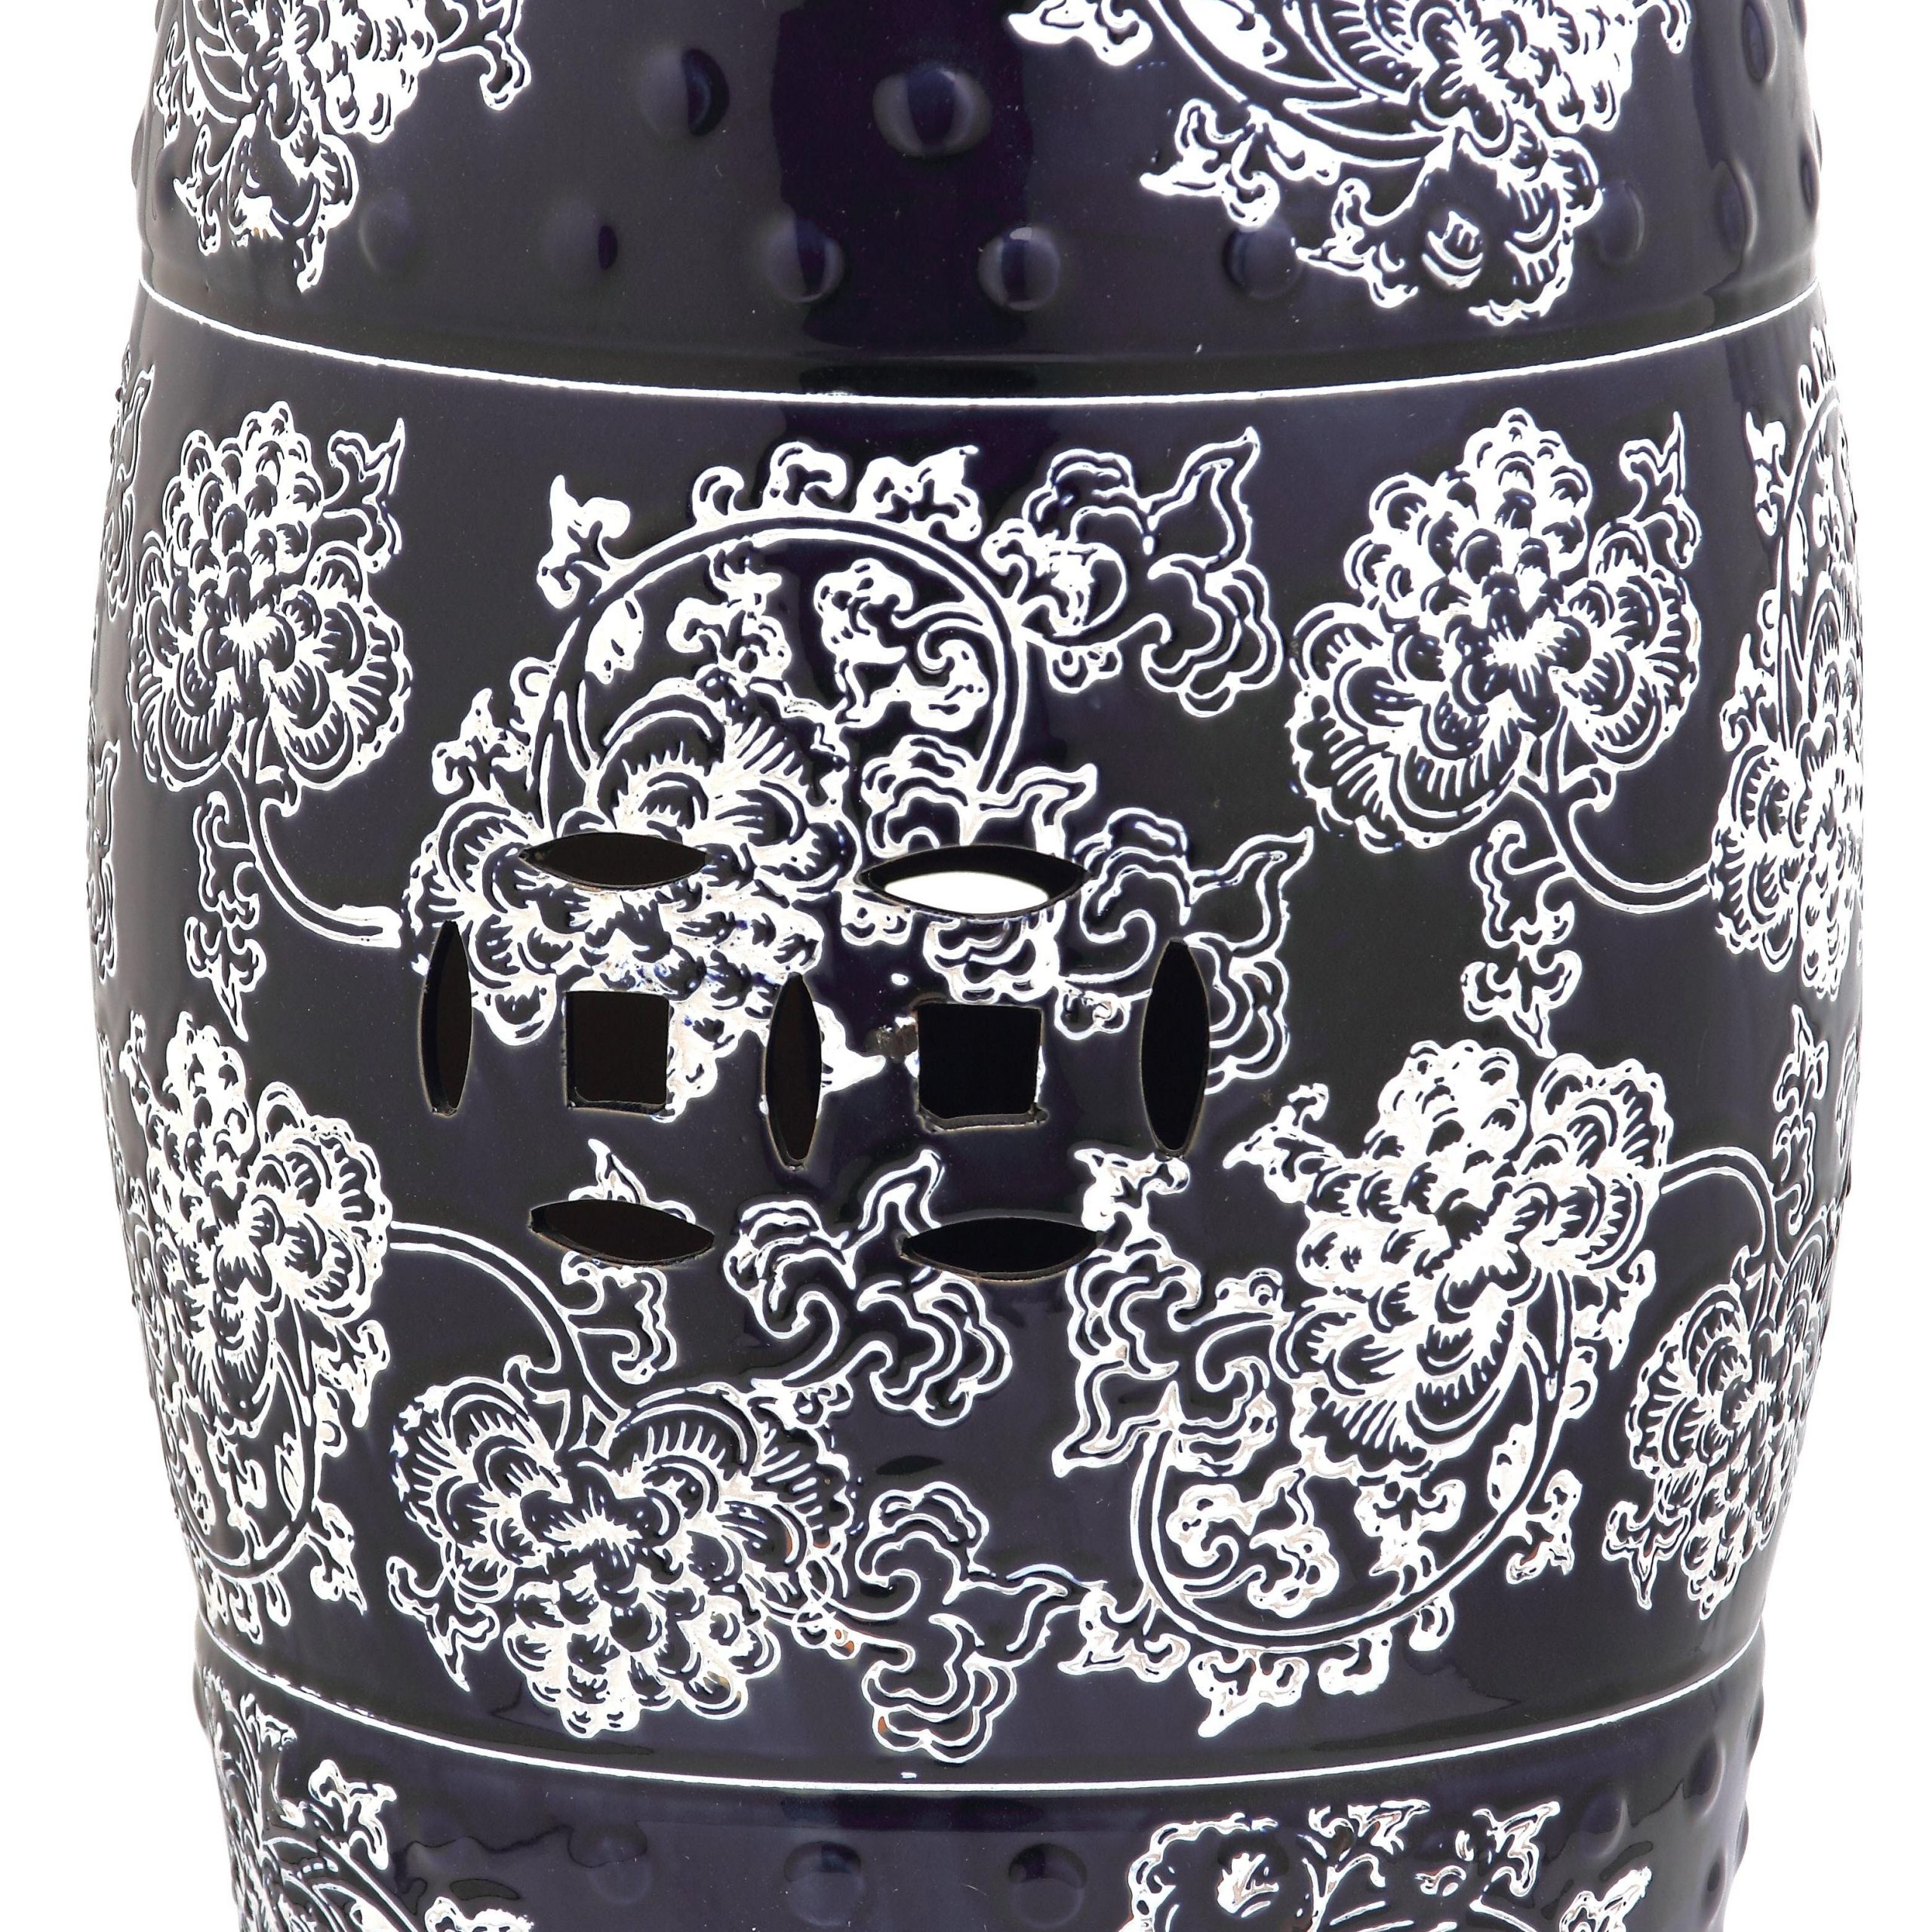 Morgan Ceramic Garden Stool Throughout Karlov Ceramic Garden Stools (View 20 of 25)